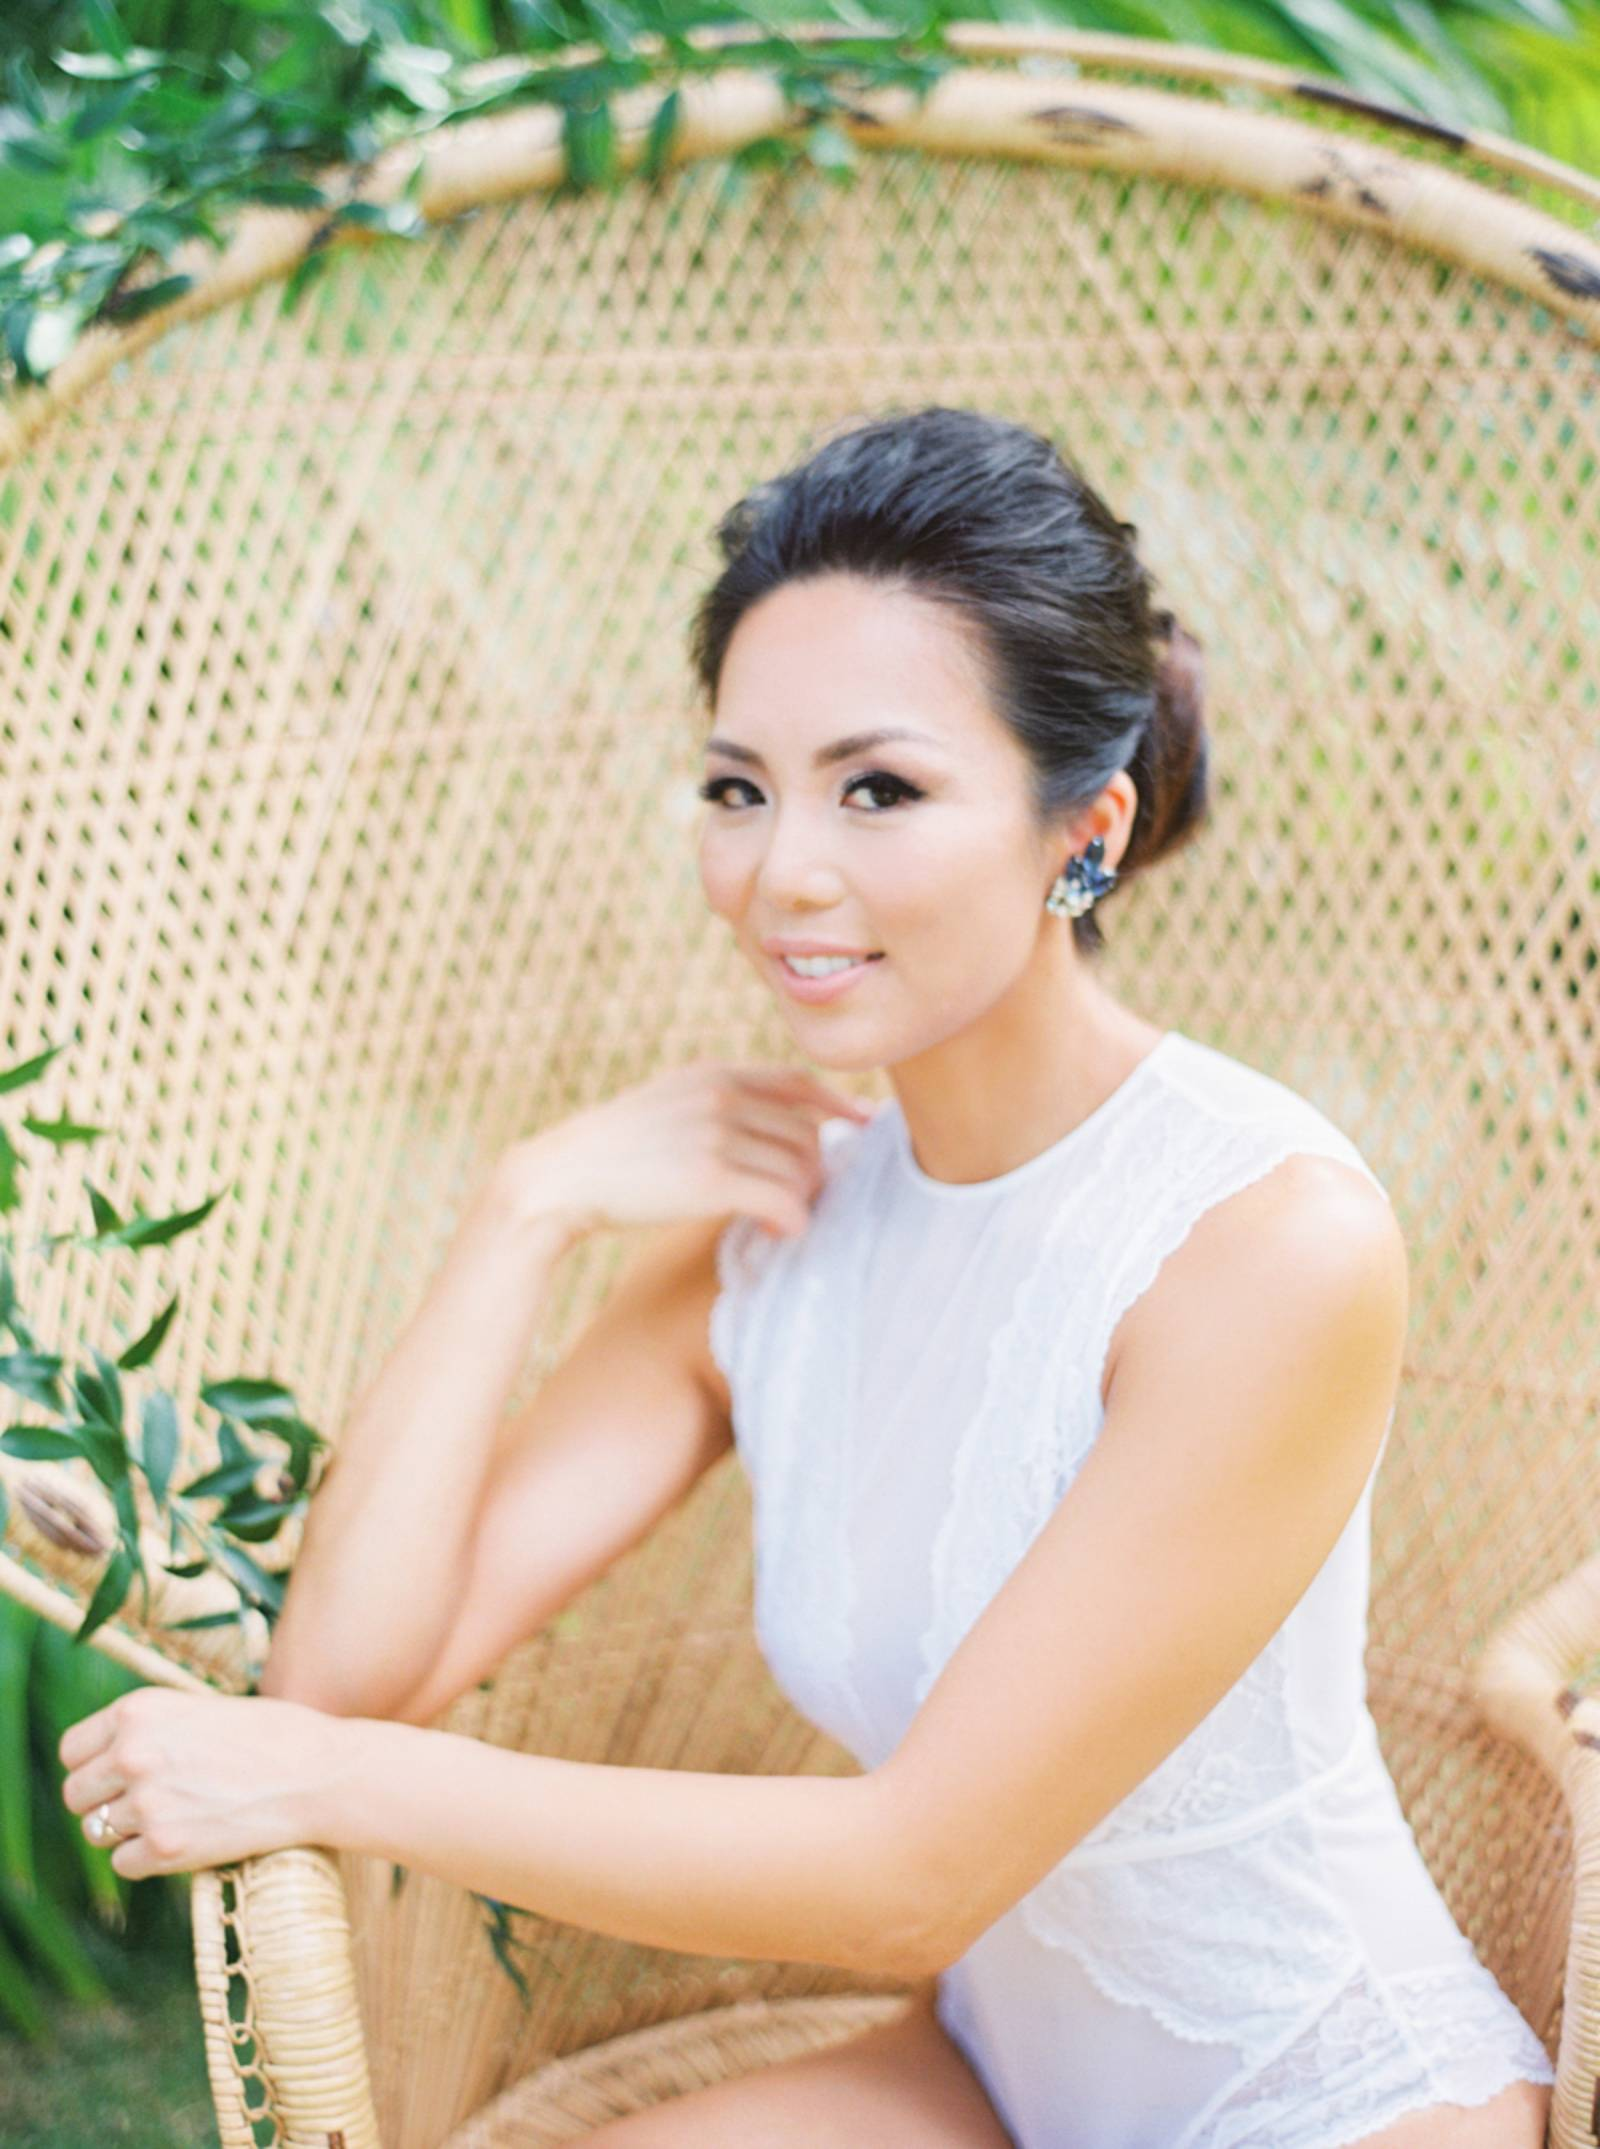 napa-makeup-artist-hawaii-makeup-artist-sonoma-makeup-artist-trynh-photo-north-shore-hawaii-6.jpg